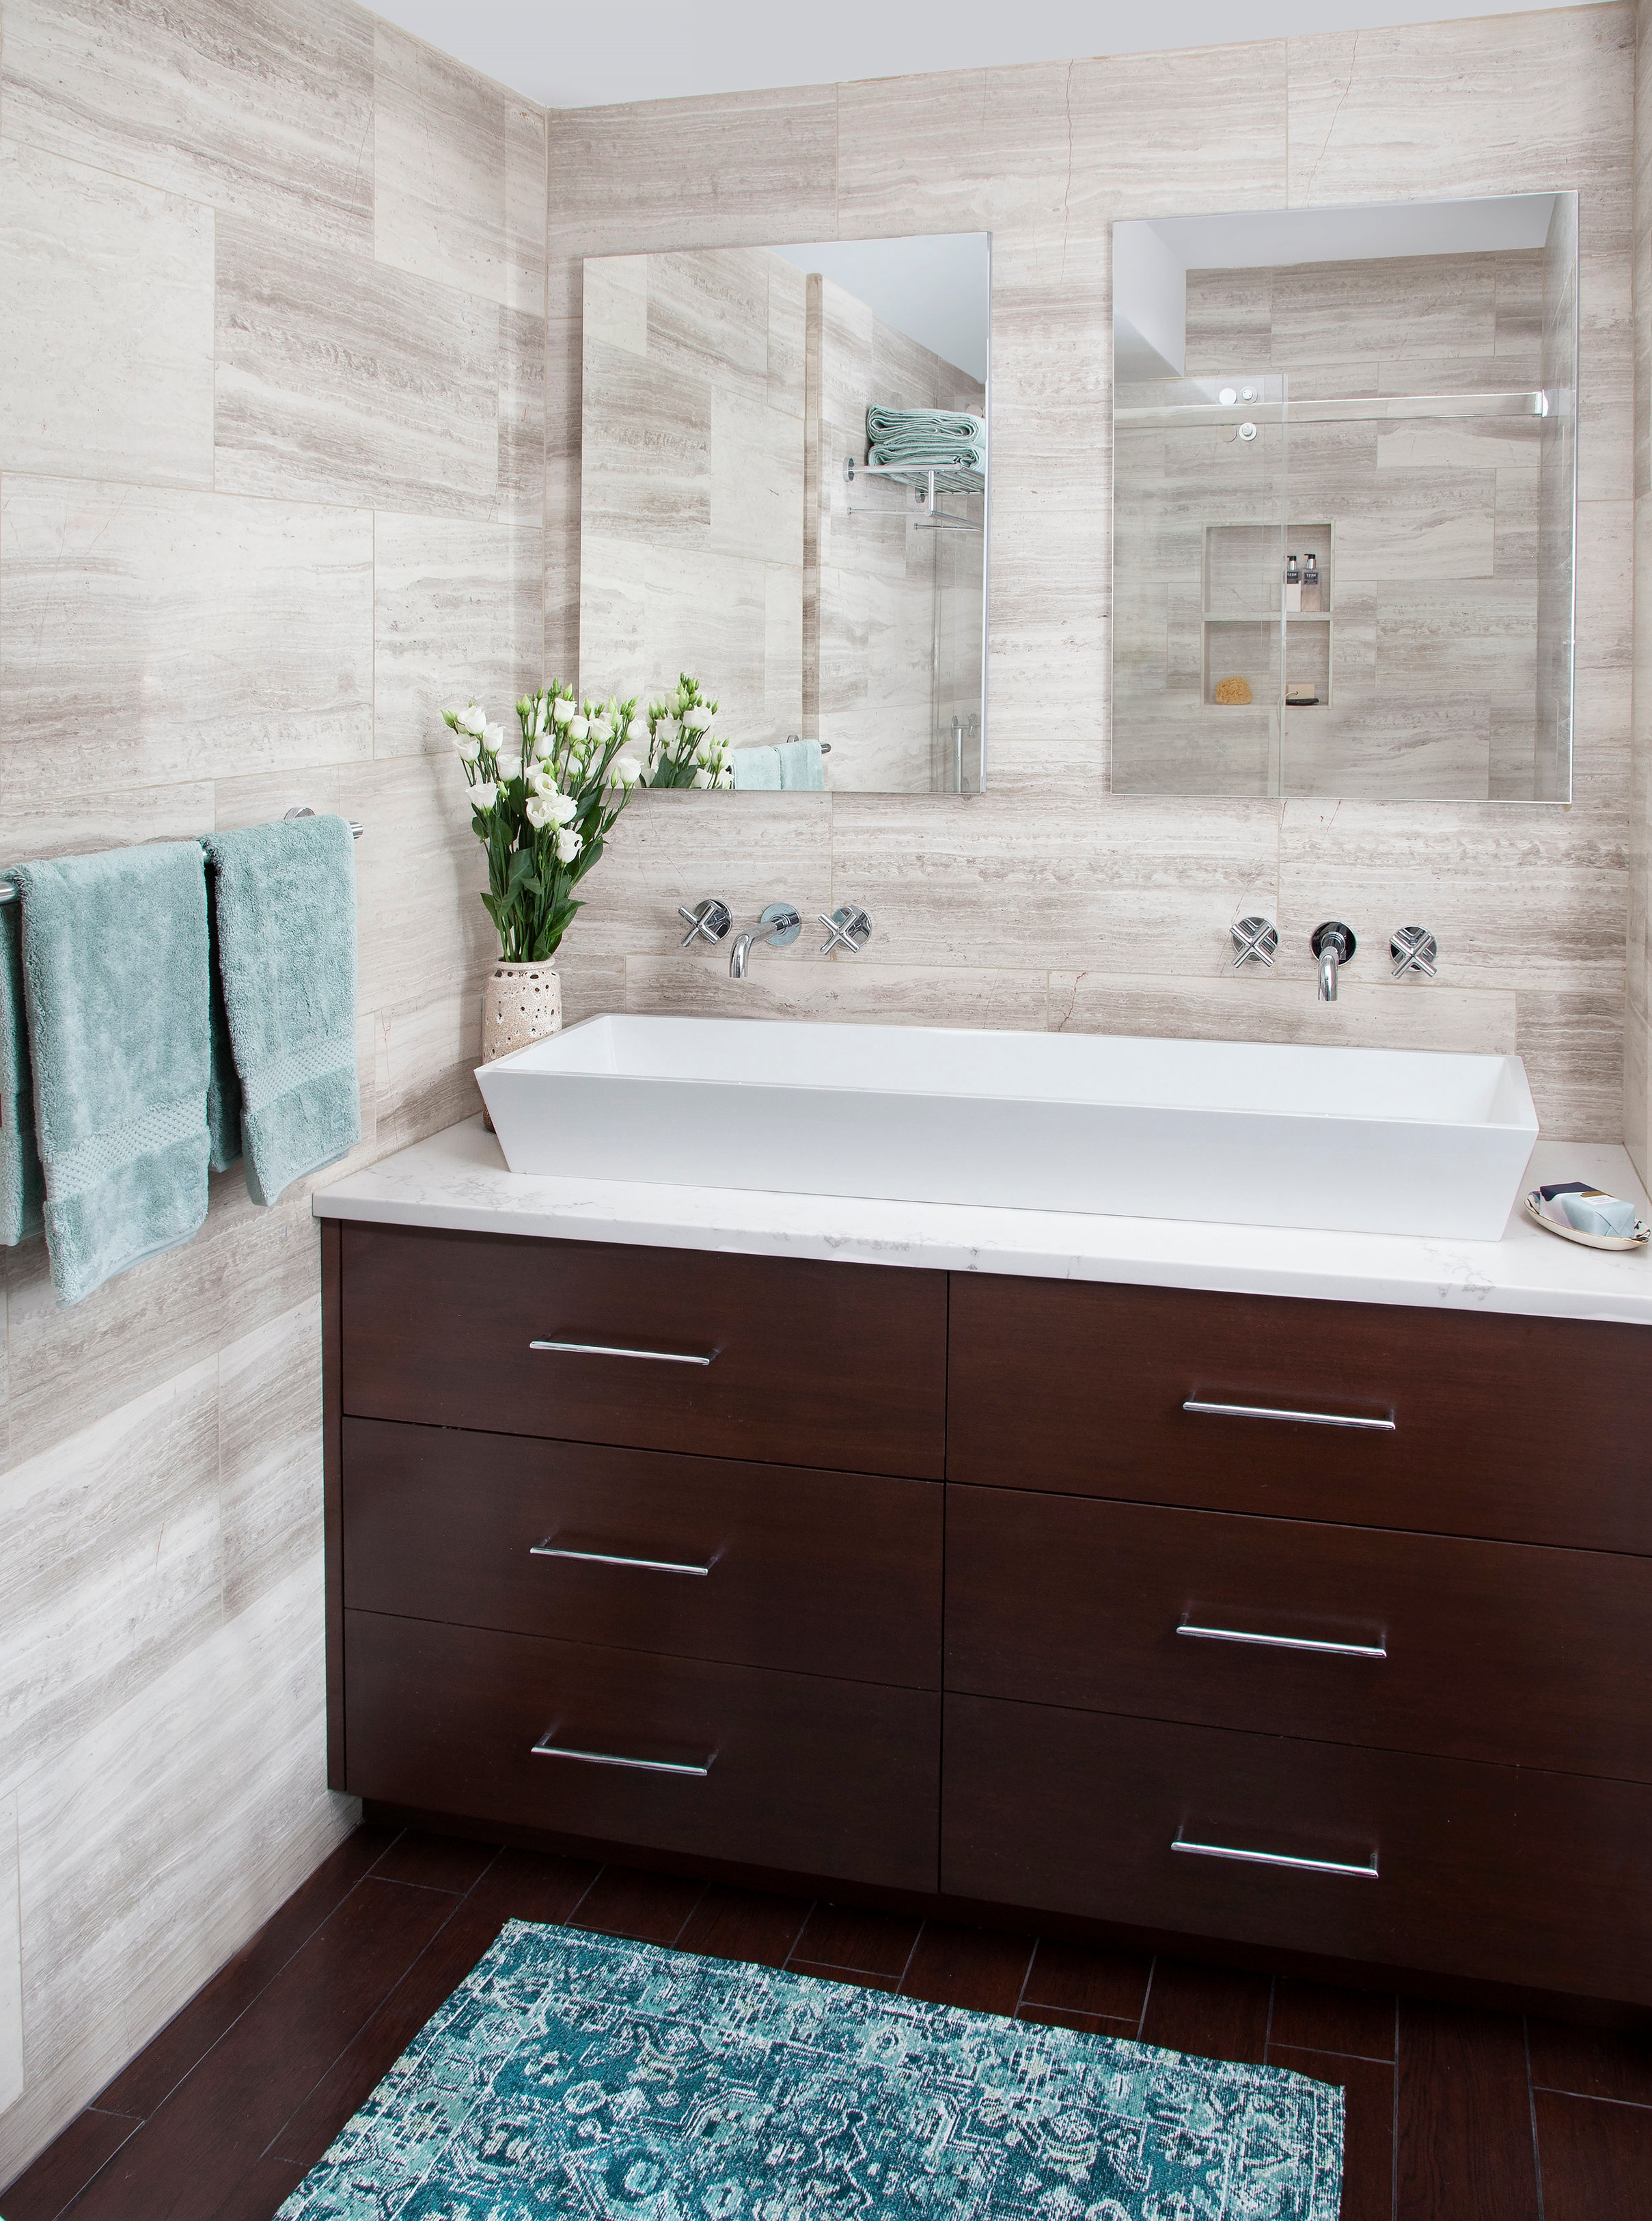 ArditiDesign_ColumbusAvenue_Bathroom.jpg